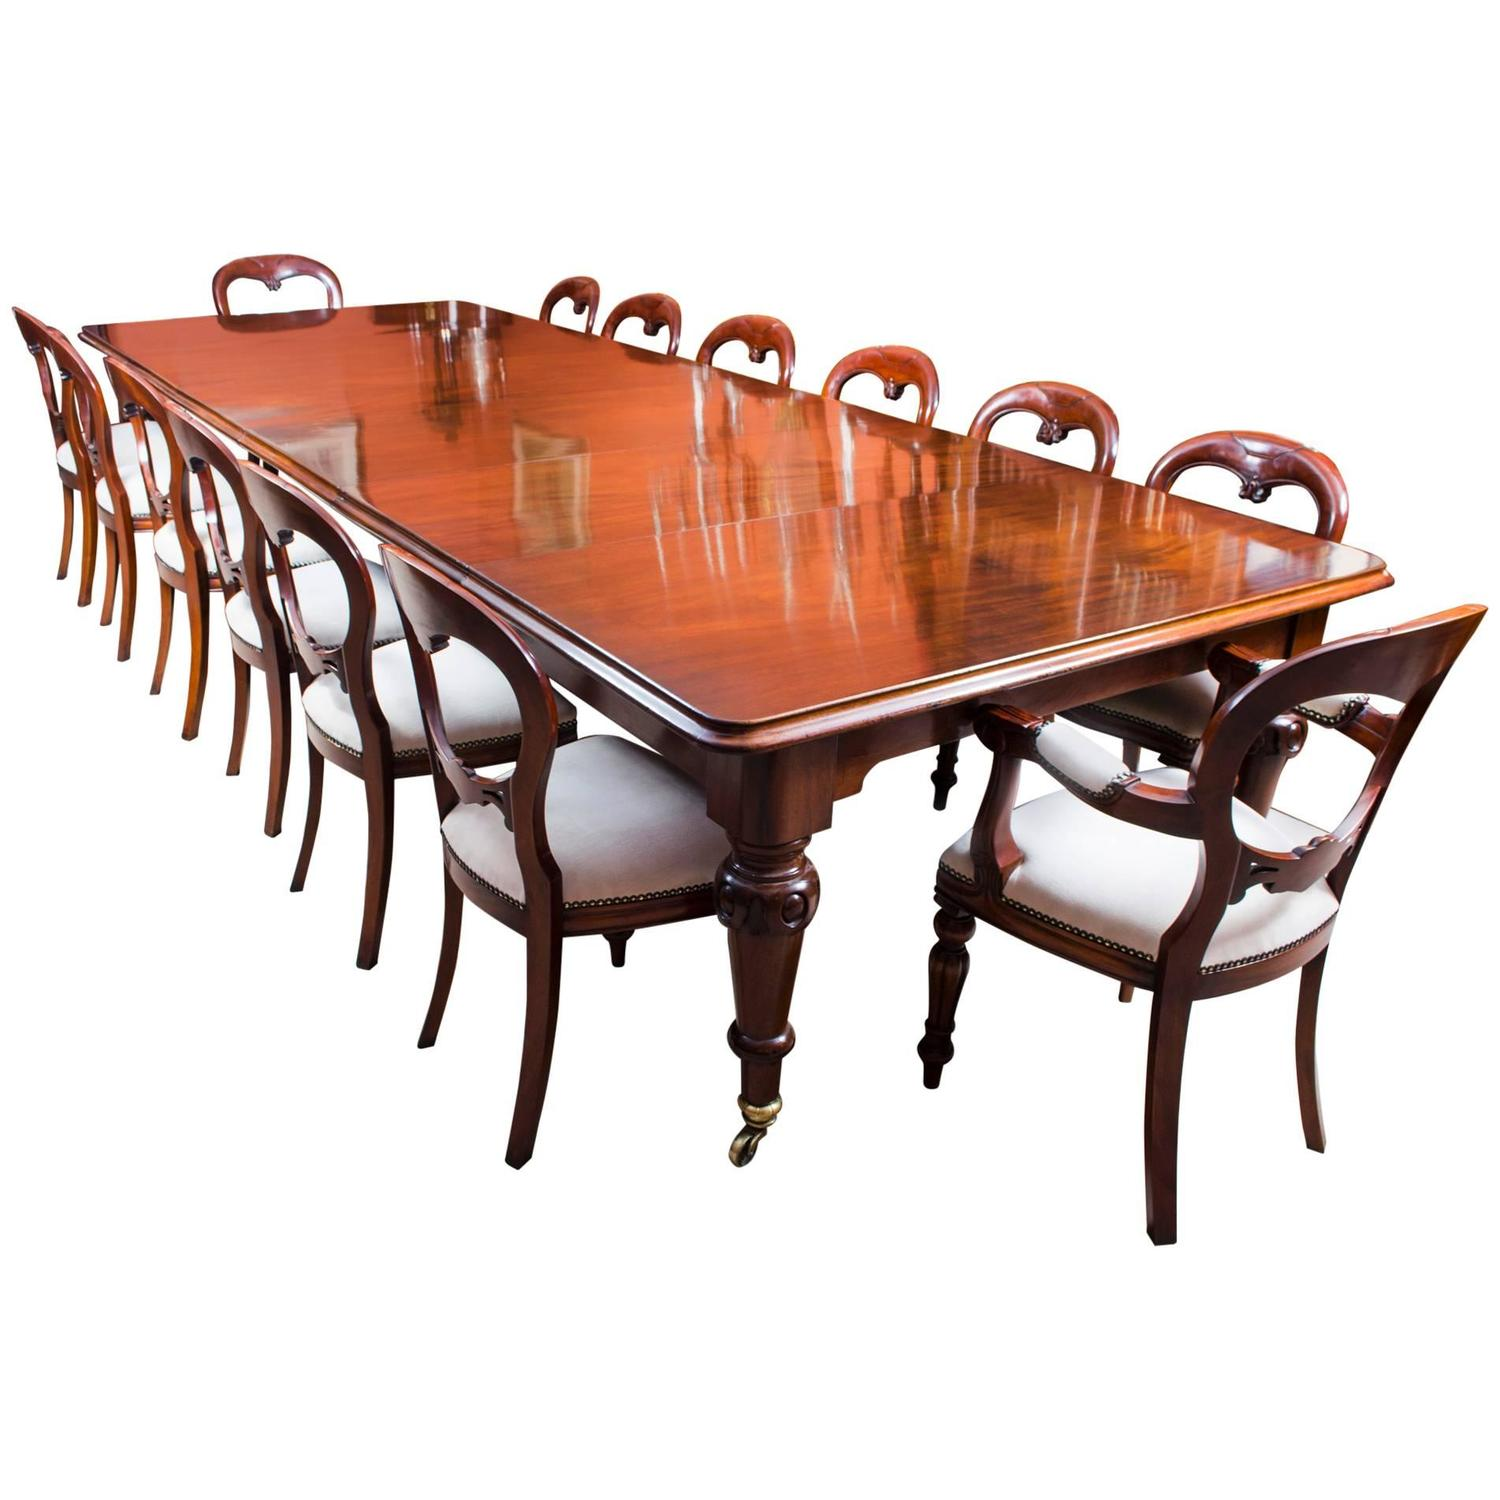 """Victorian Dining Table: Antique 13ft 6"""" Victorian Dining Table C1850 &14Chairs"""